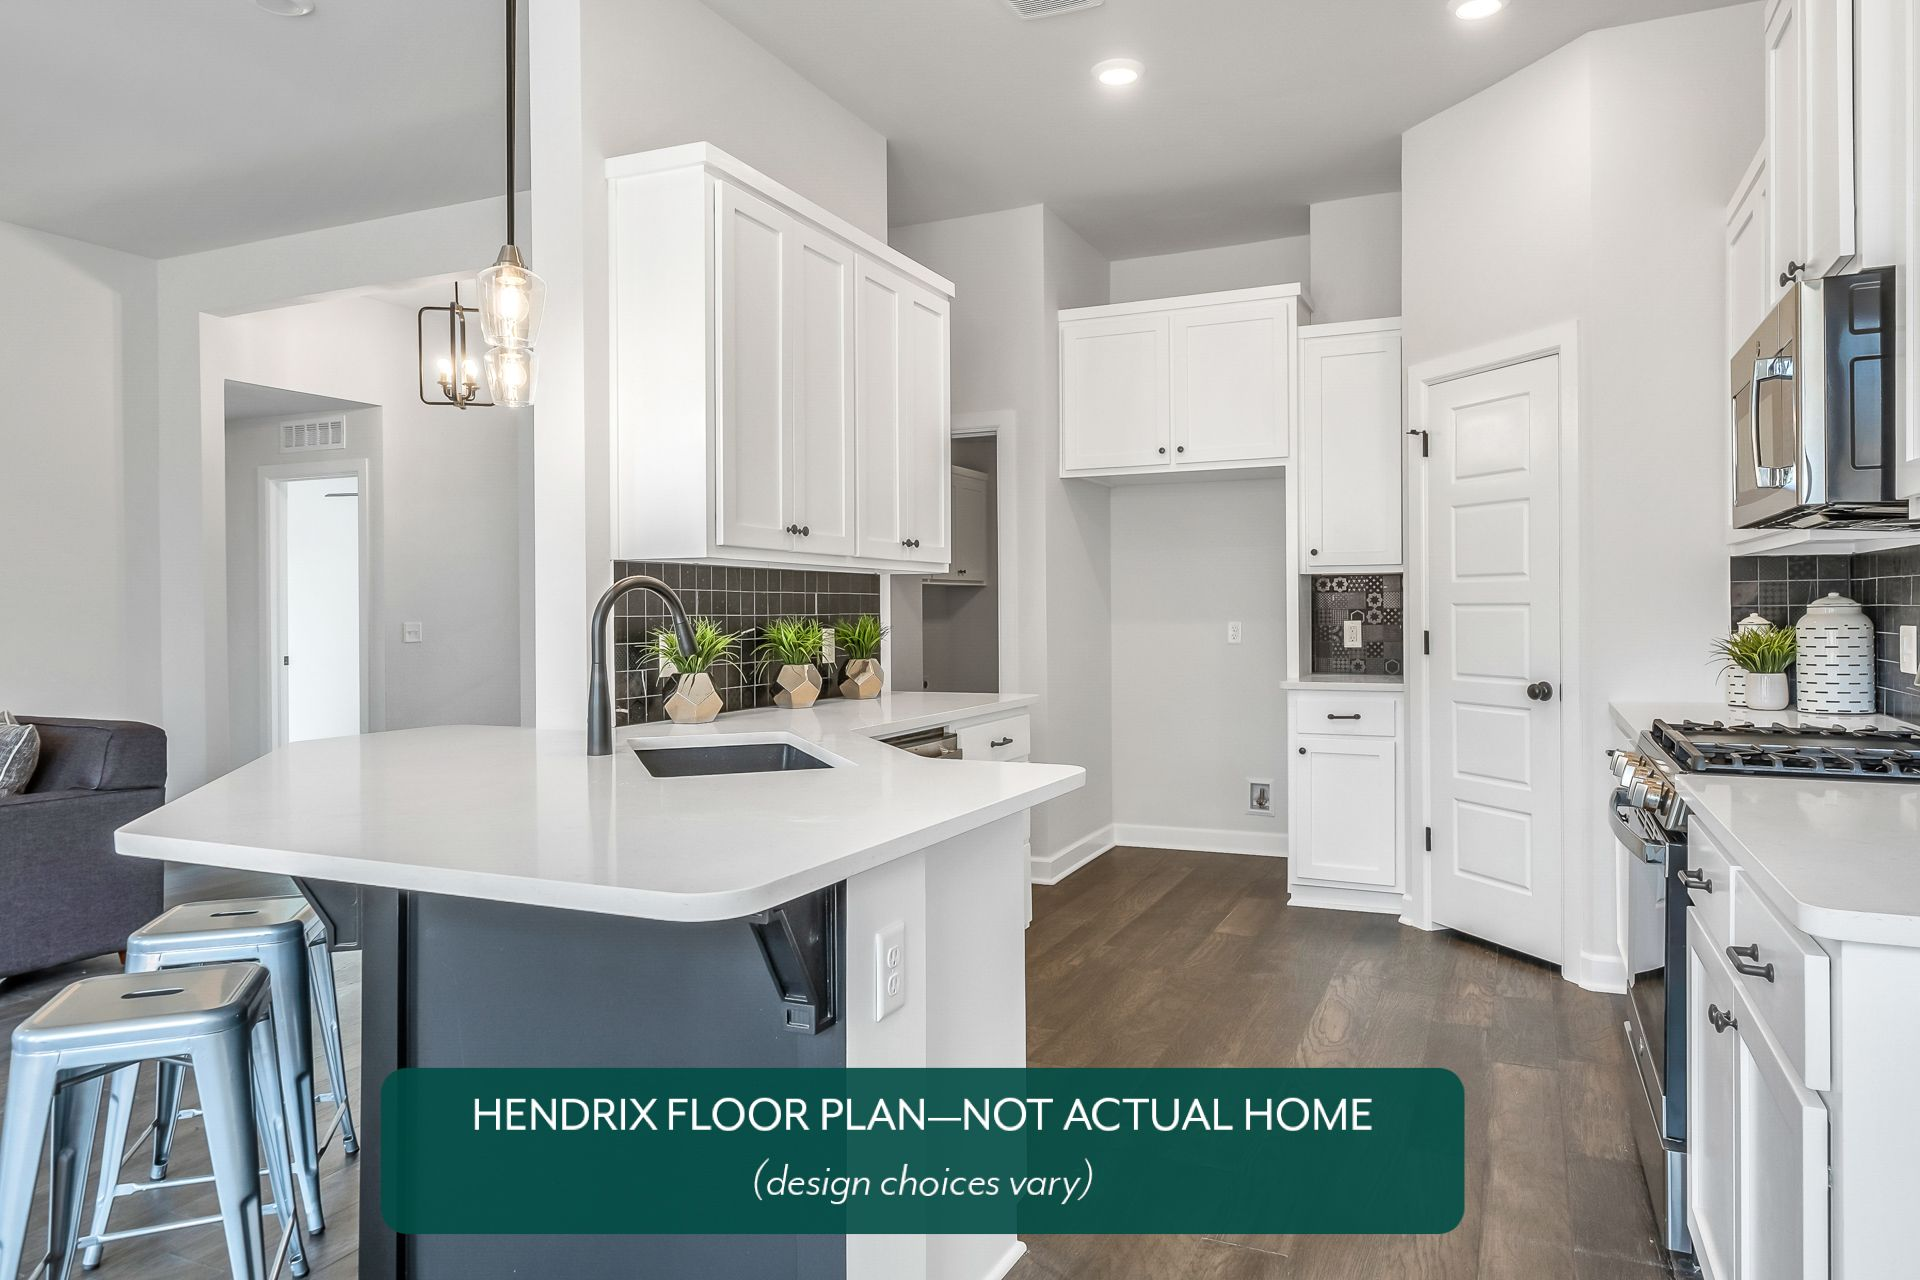 Kitchen featured in the 612 Firefork Avenue By Ideal Homes in Oklahoma City, OK